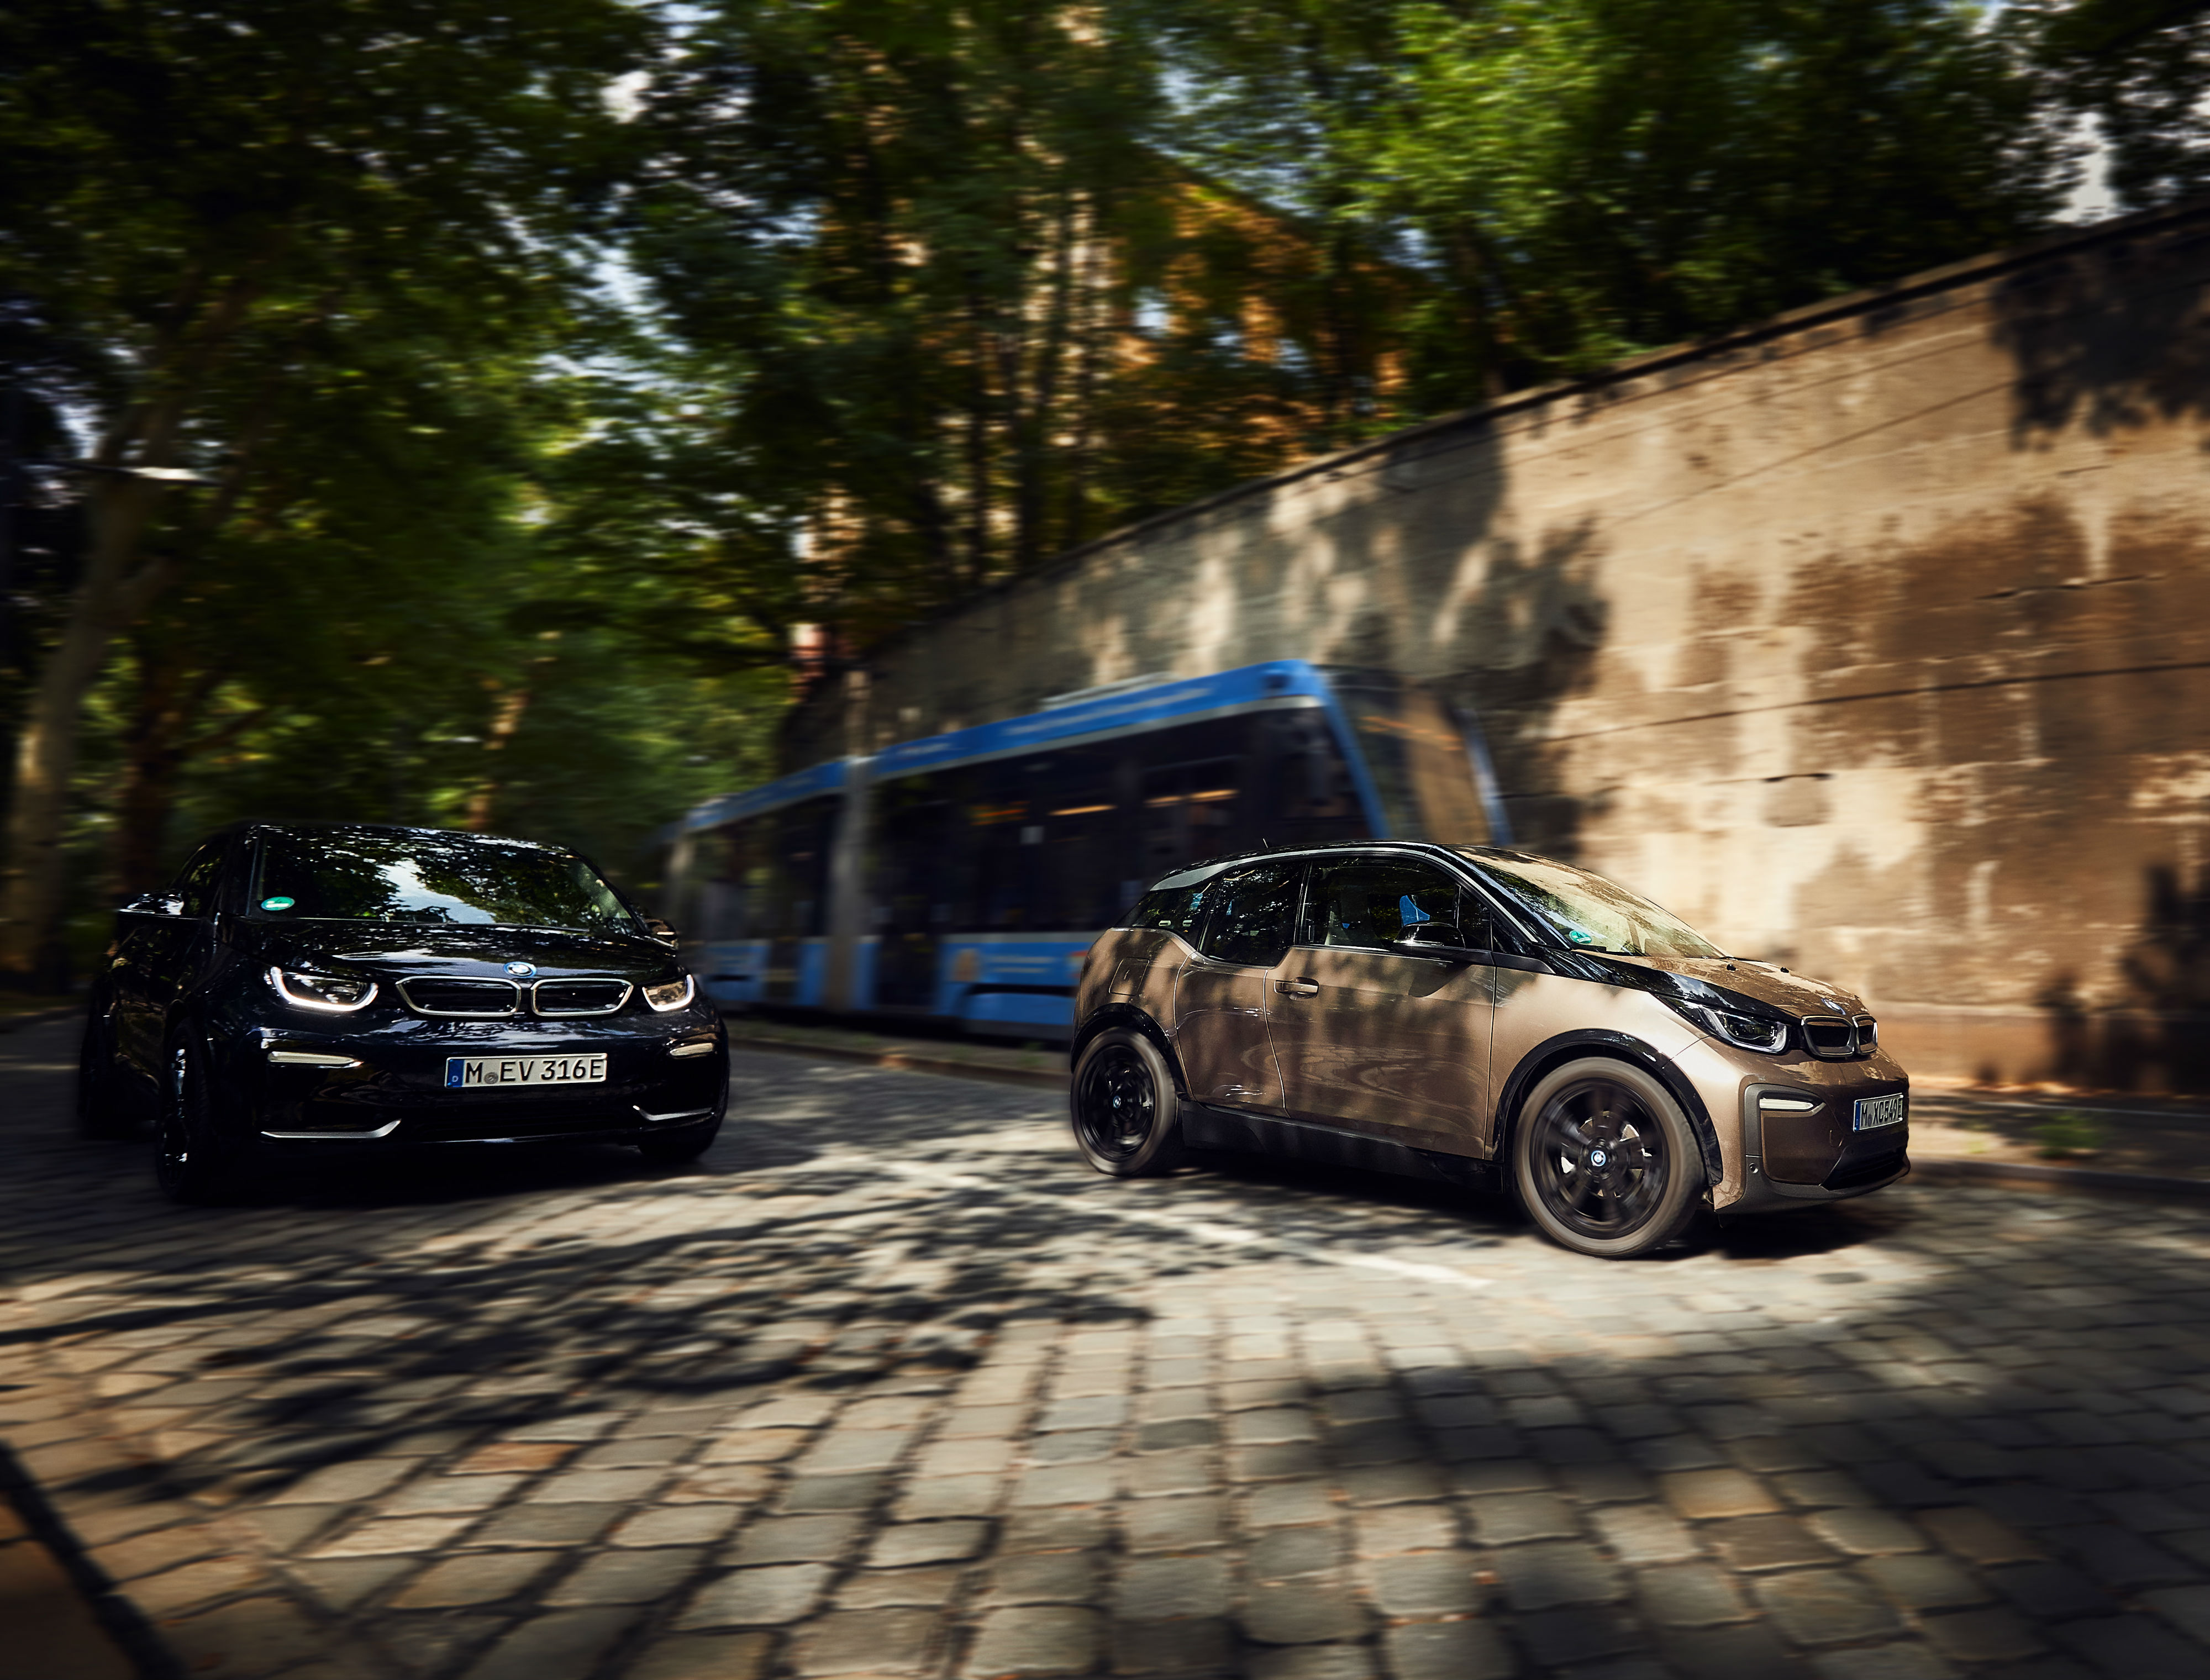 BMW Pumps up the Power with 129Ah Battery – WHEELS ca